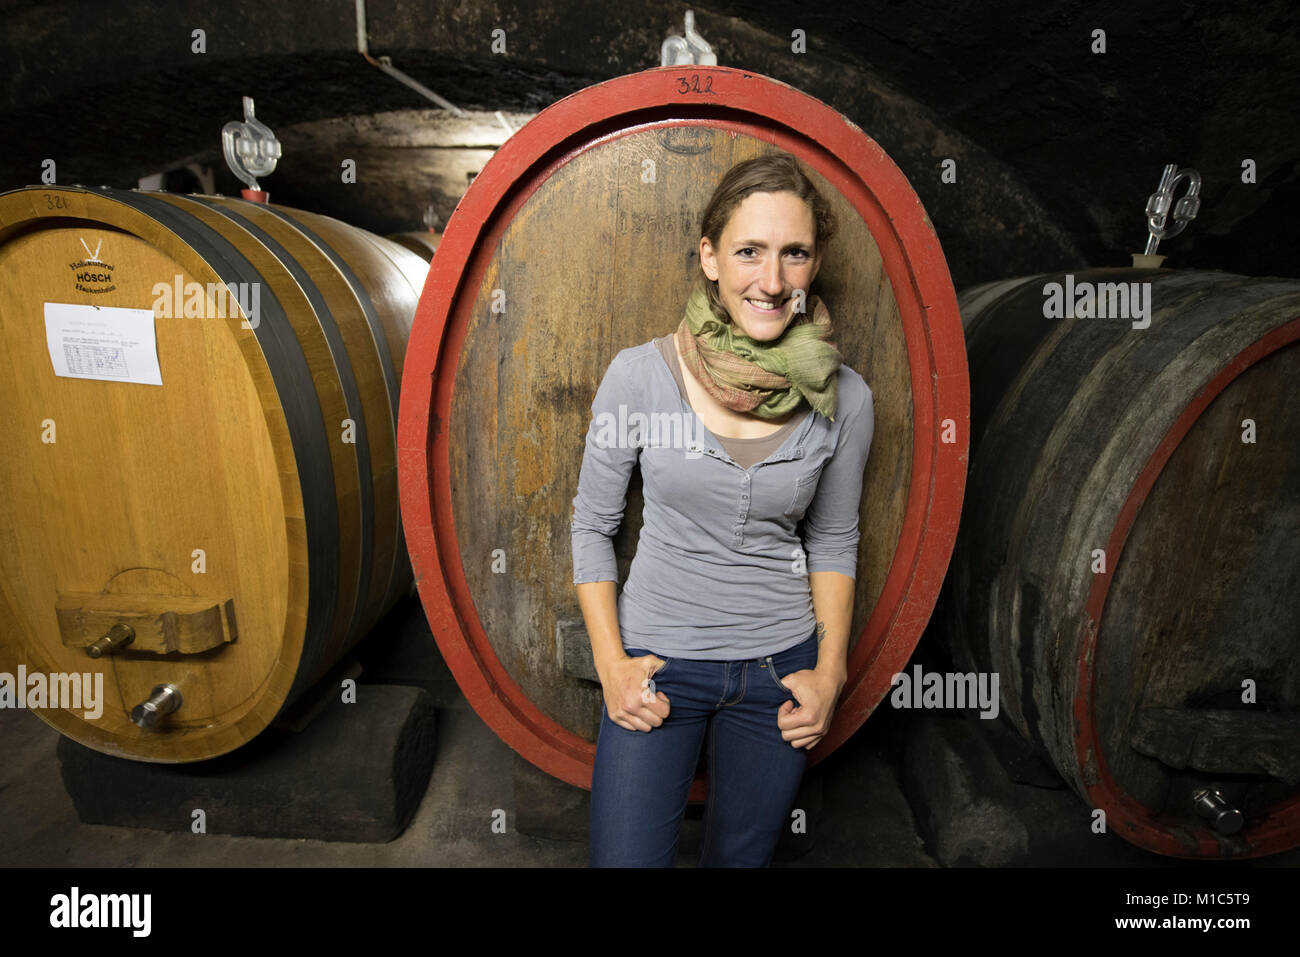 Theresa Breuer, Breuer winery, Rüdesheim, Germany - Stock Image